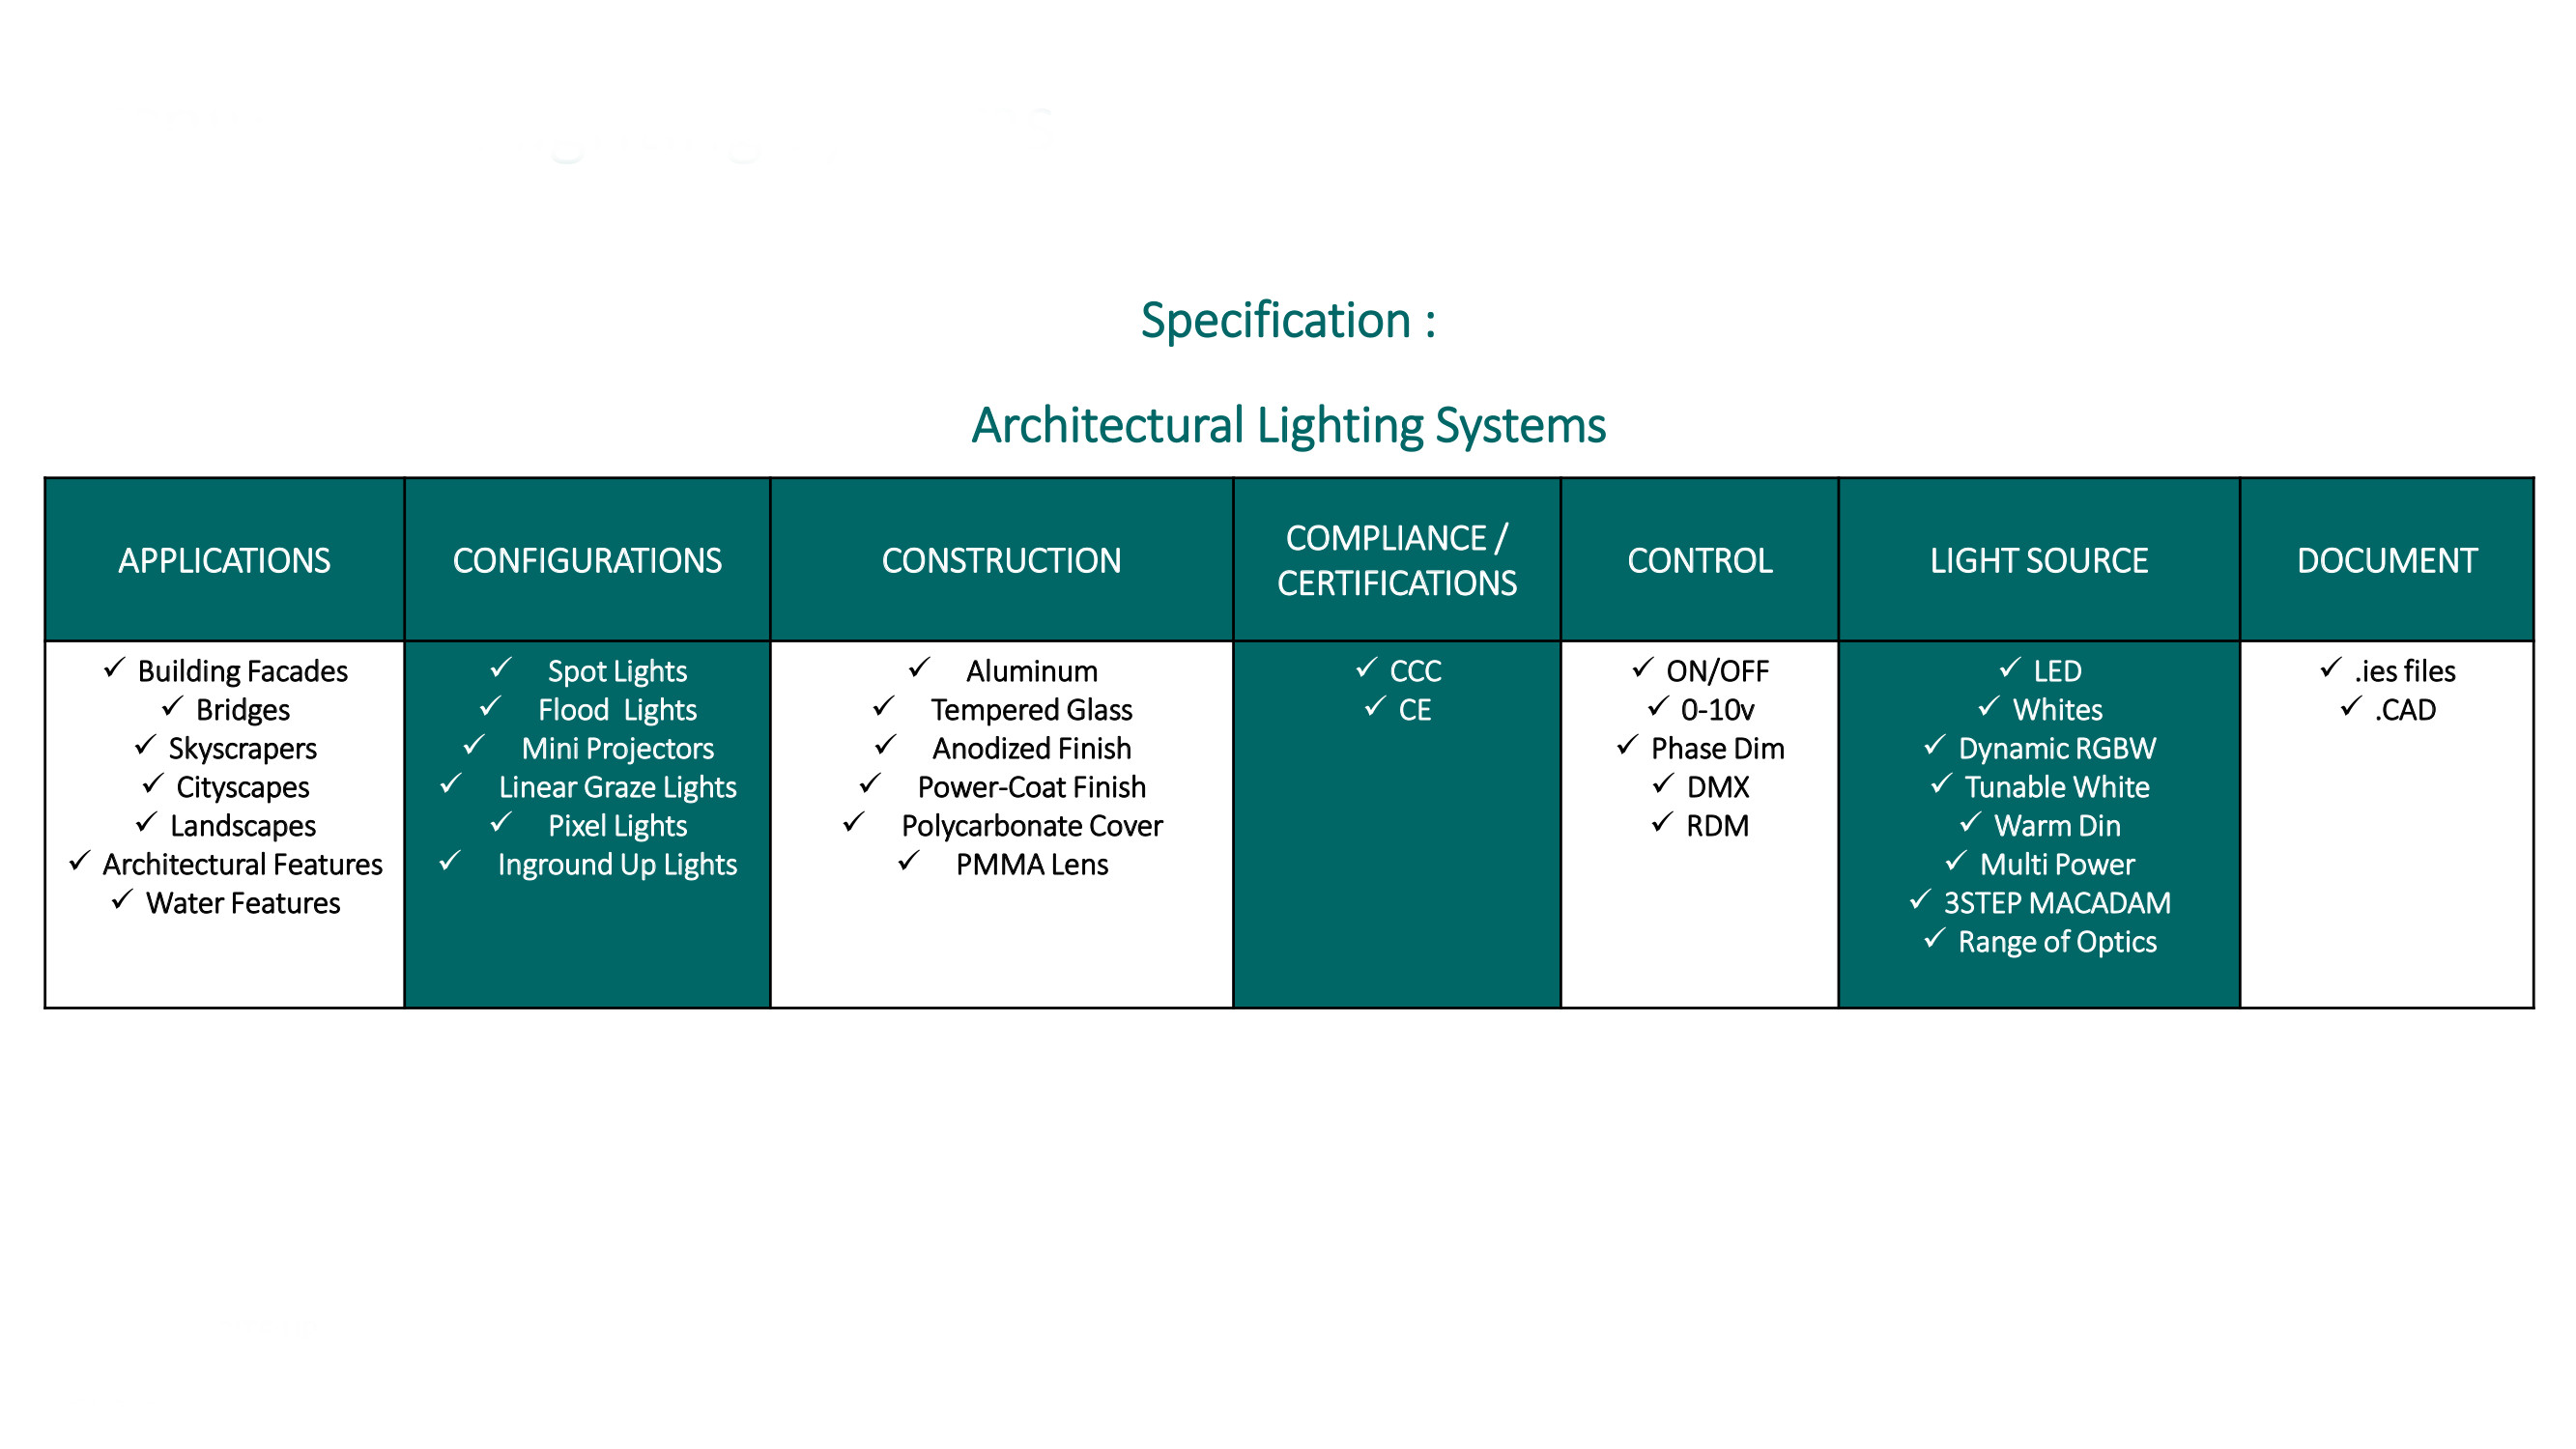 Architectural Lighting Systems Specification Table Devar